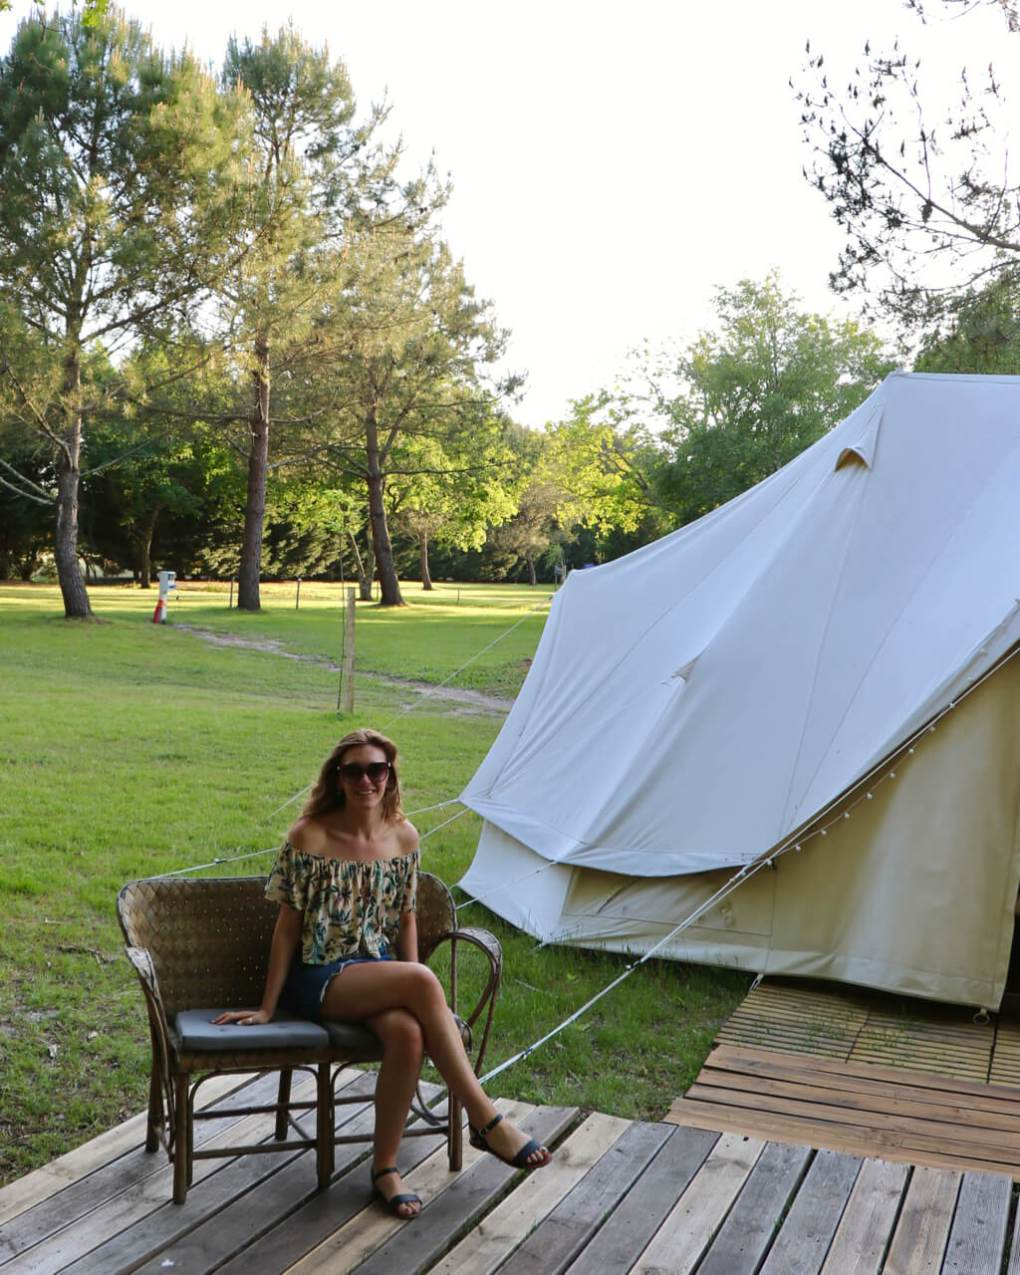 Partnering with Sanctuary Surf Glamping and Surf School in Bordeaux, France